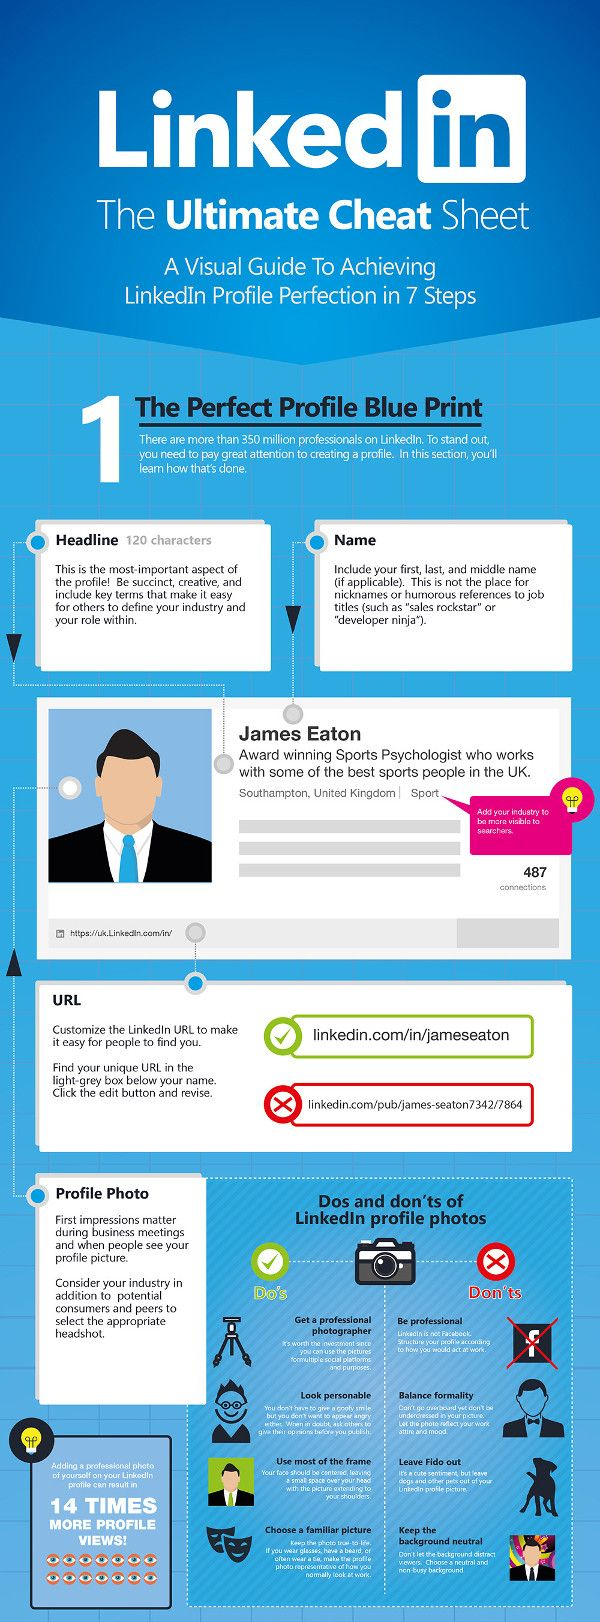 The Ultimate LinkedIn Cheat Sheet [Infographic] - @marketingprofs